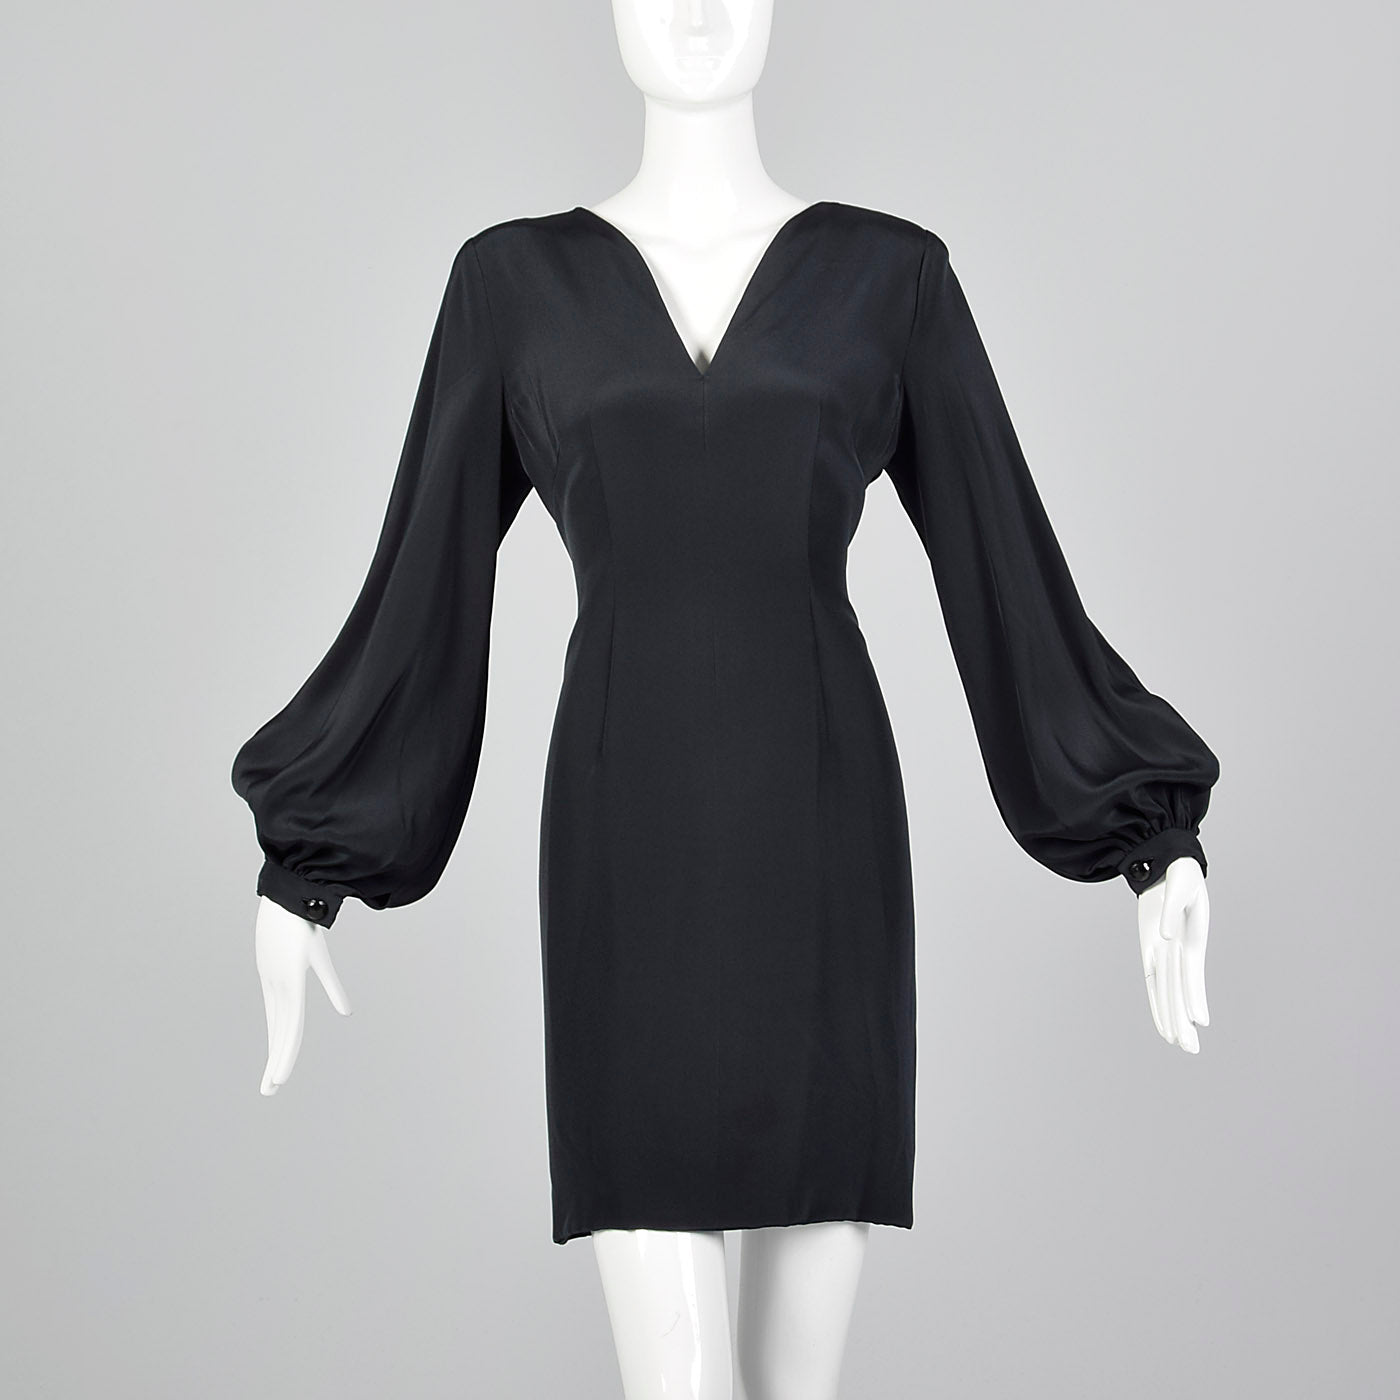 1980s Pauline Trigere Shift Dress with Bishop Sleeve